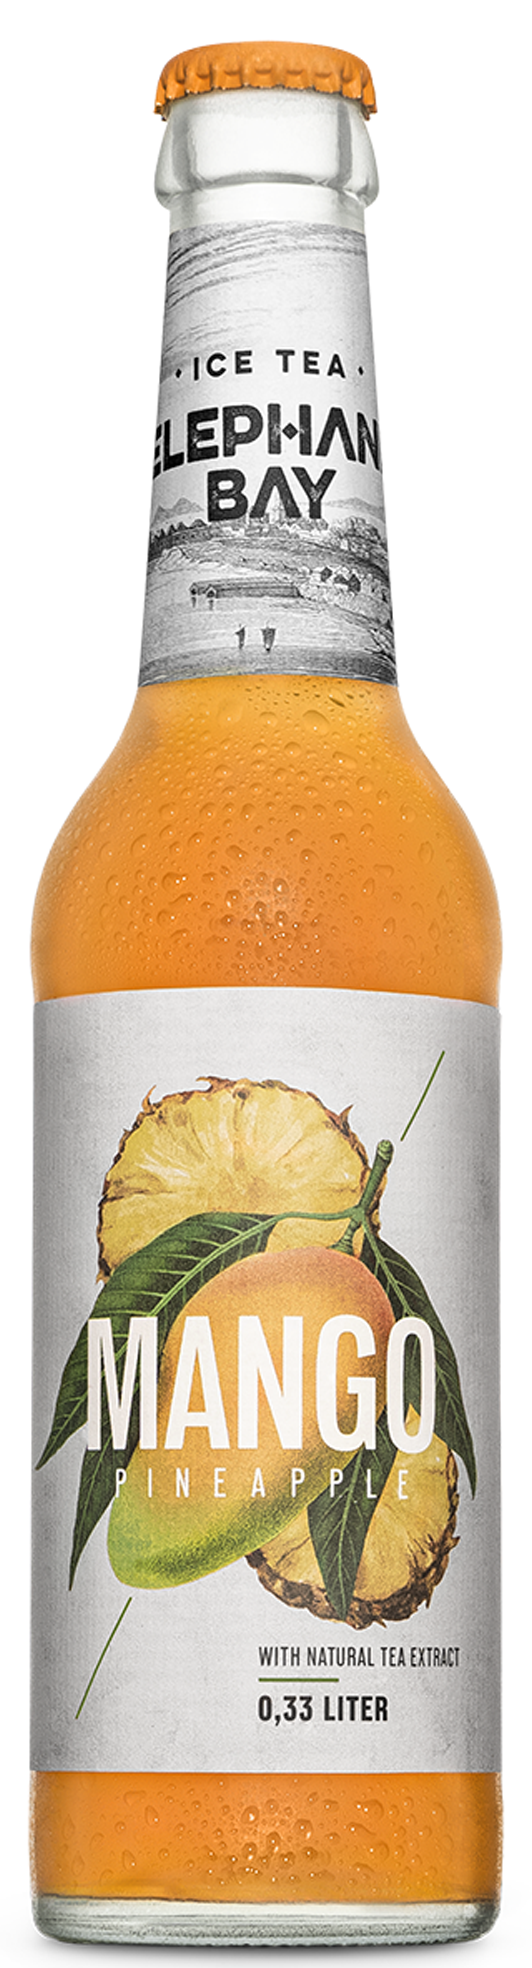 Elephant Bay Ice Tea Mango Pineapple 0,33 l Glas Mehrweg